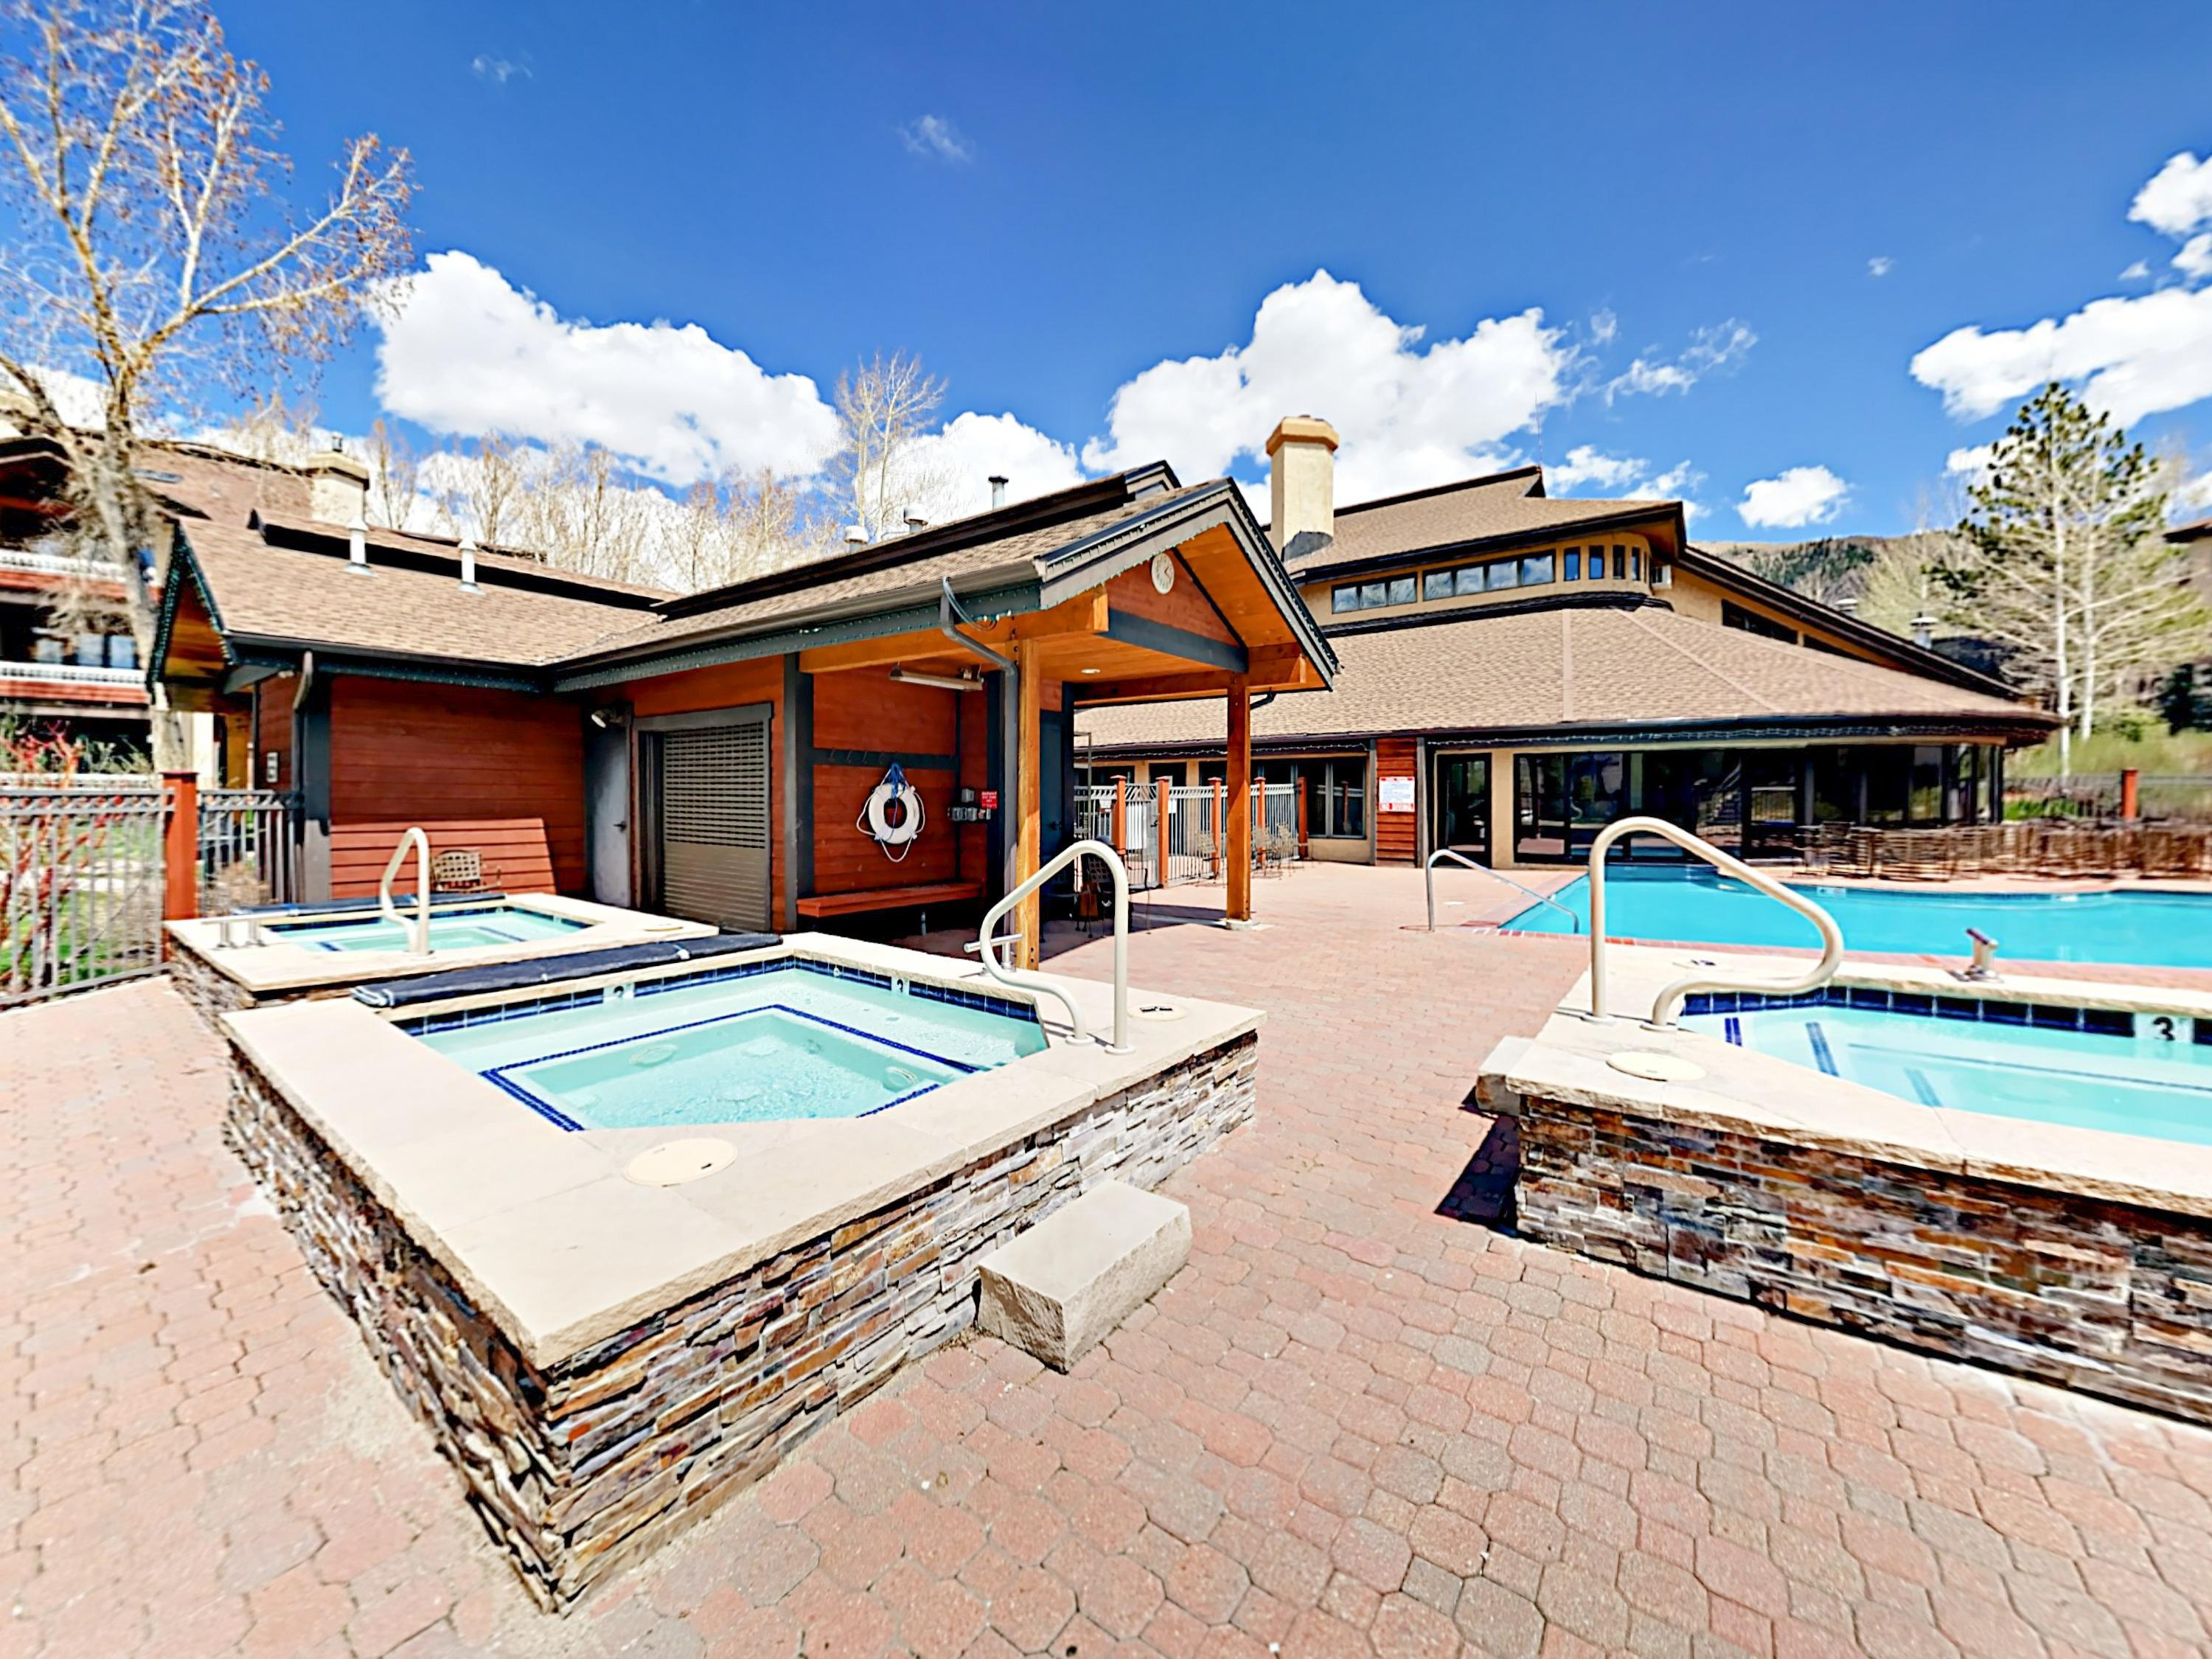 This complex features 10 hot tubs, with 3 right by your unit!